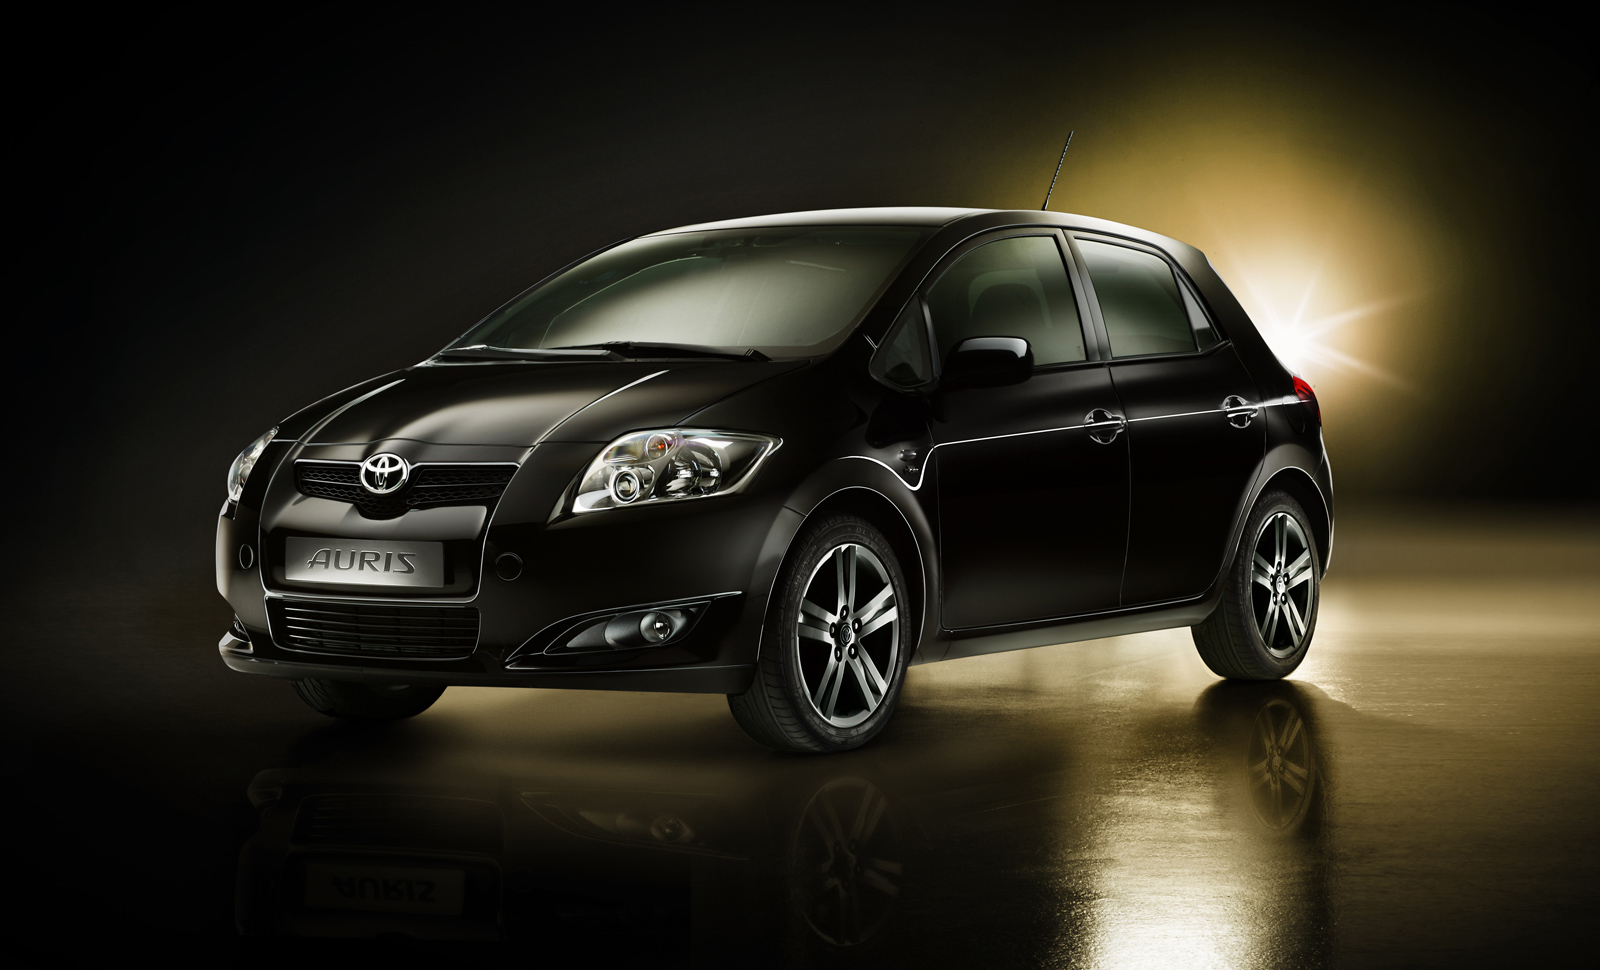 toyota auris 2008 wallpaper car wallpapers. Black Bedroom Furniture Sets. Home Design Ideas